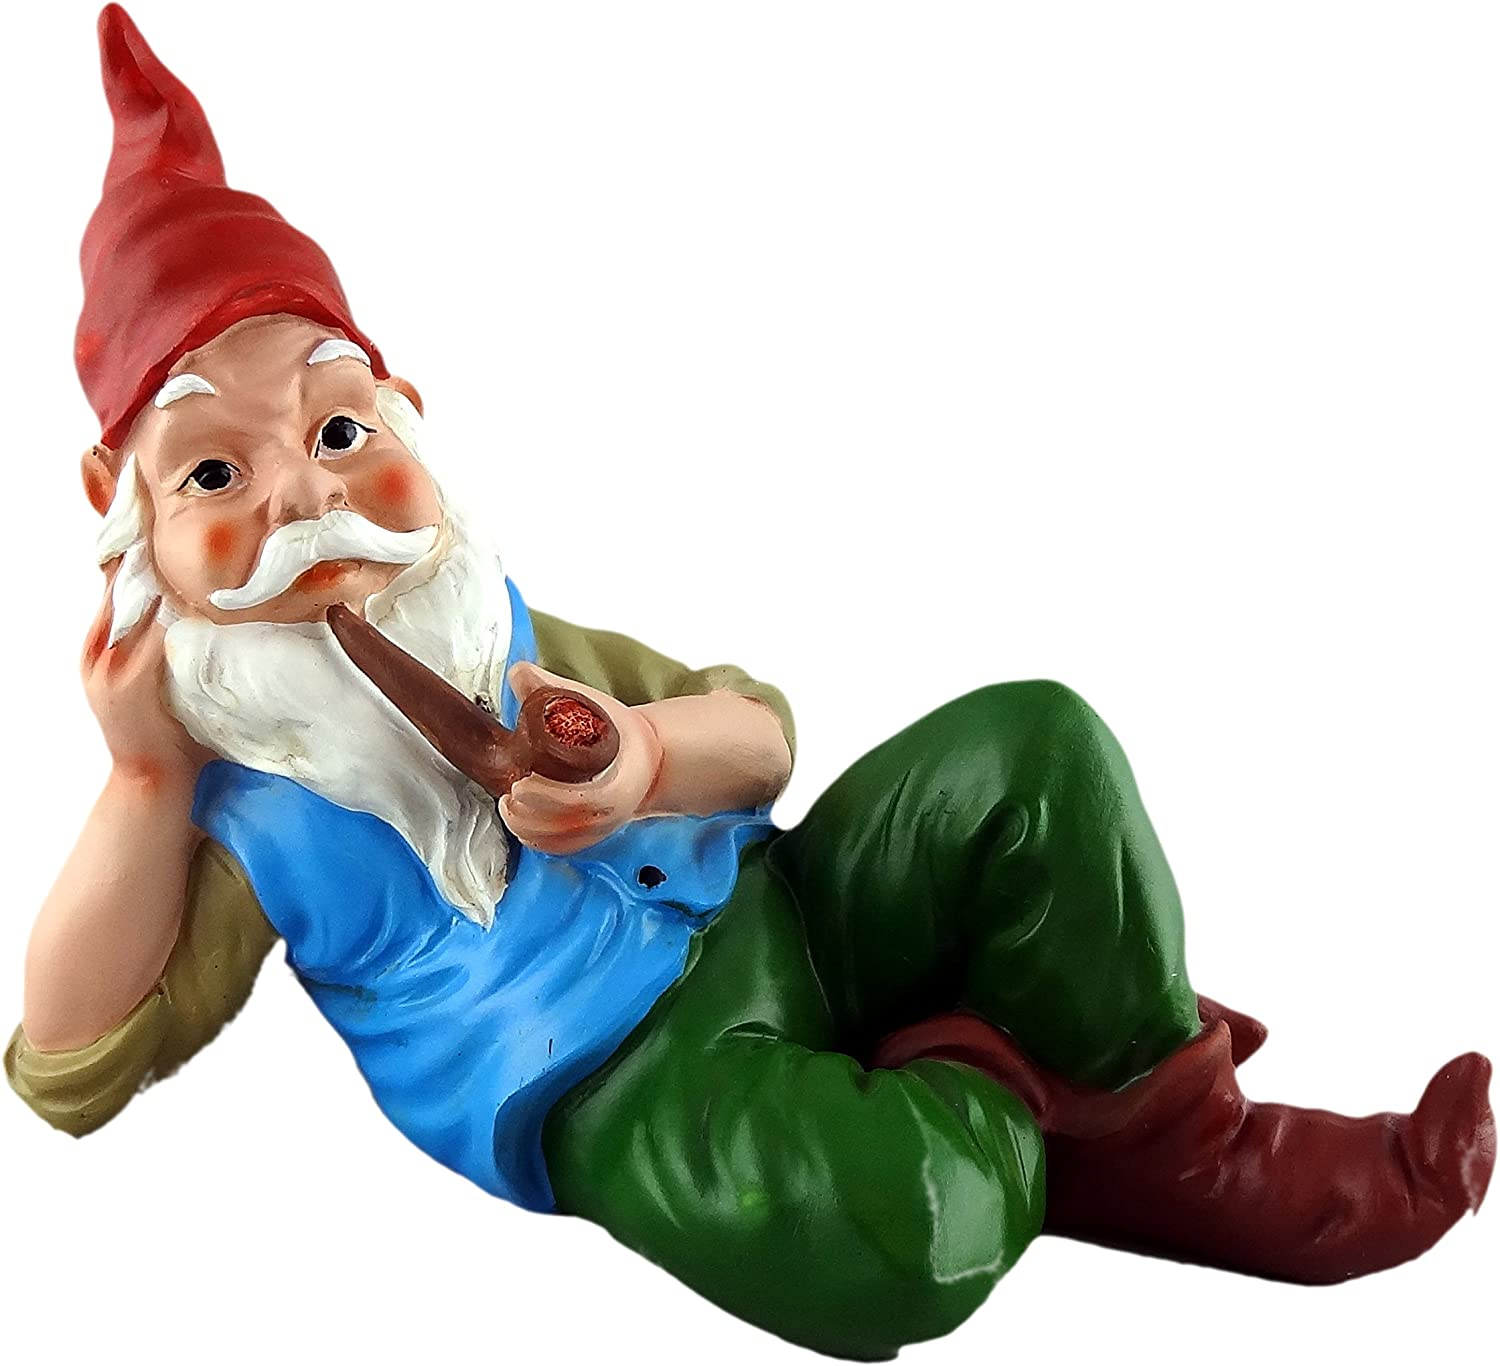 Funny Guy Mugs Garden Gnome Statue - Sexy Gnome - Indoor/Outdoor Garden Gnome Sculpture for Patio, Yard or Lawn